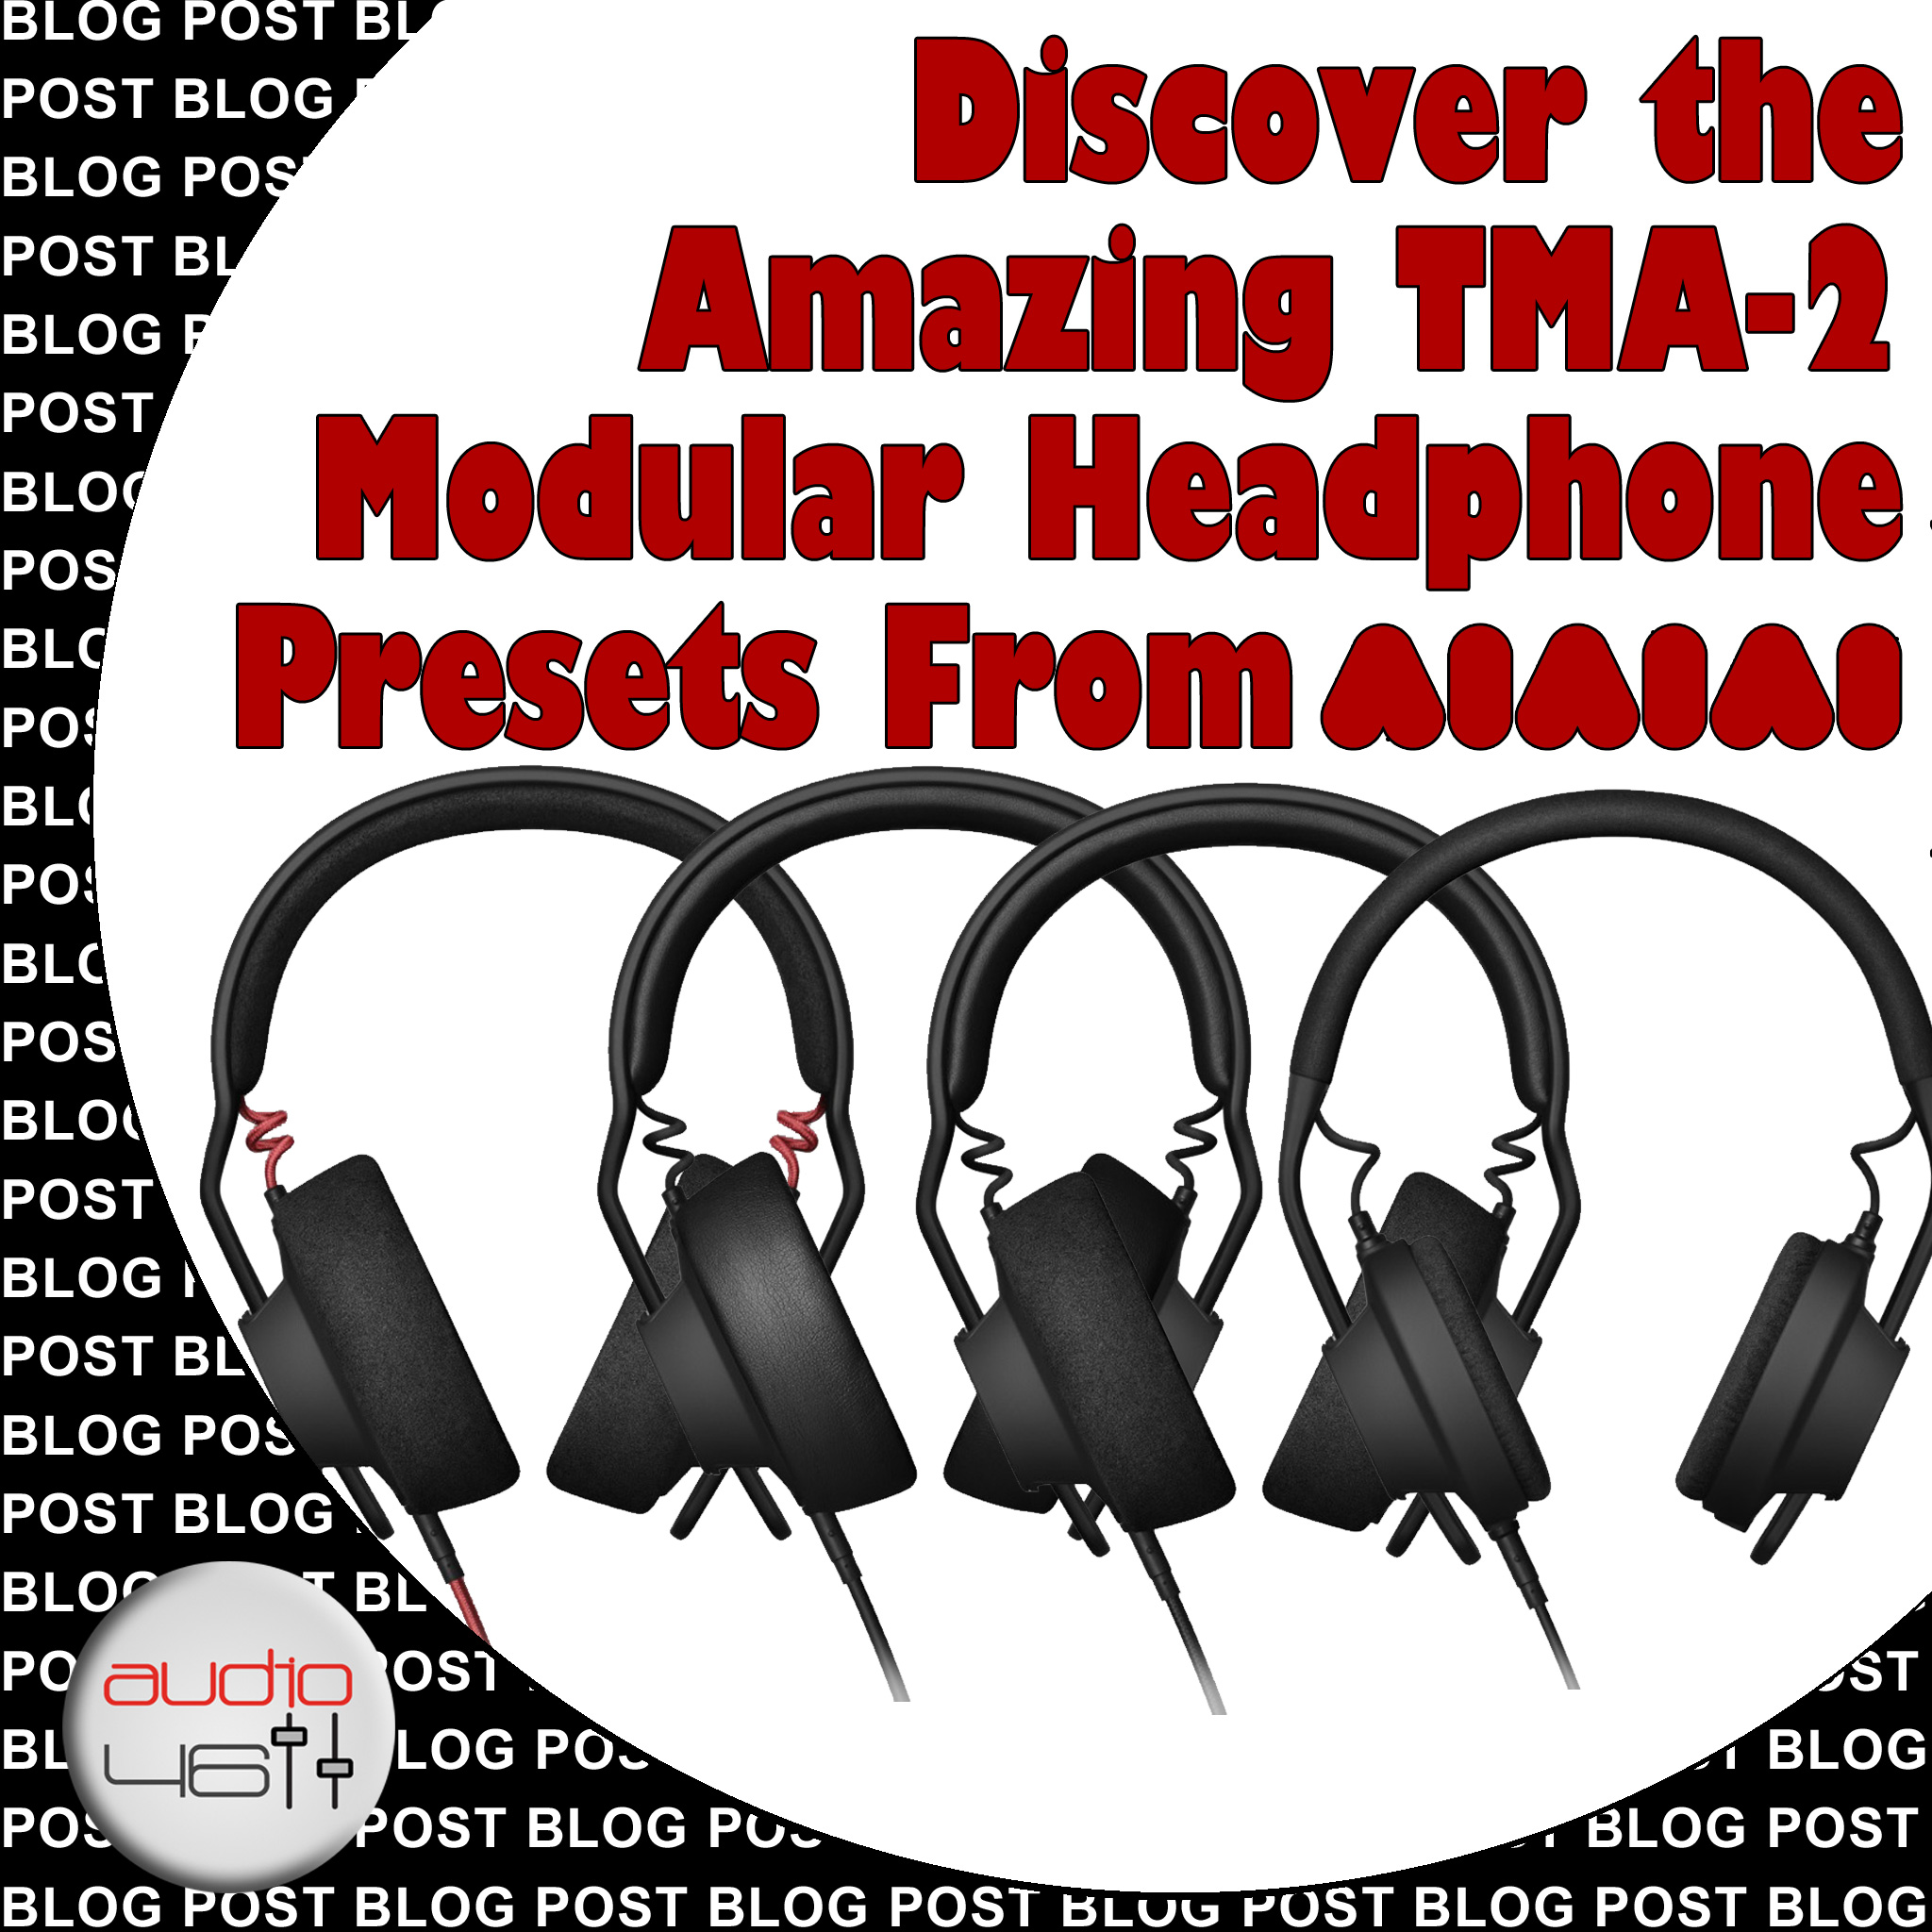 Discover the Amazing TMA-2 Modular Headphone Presets from AIAIAI